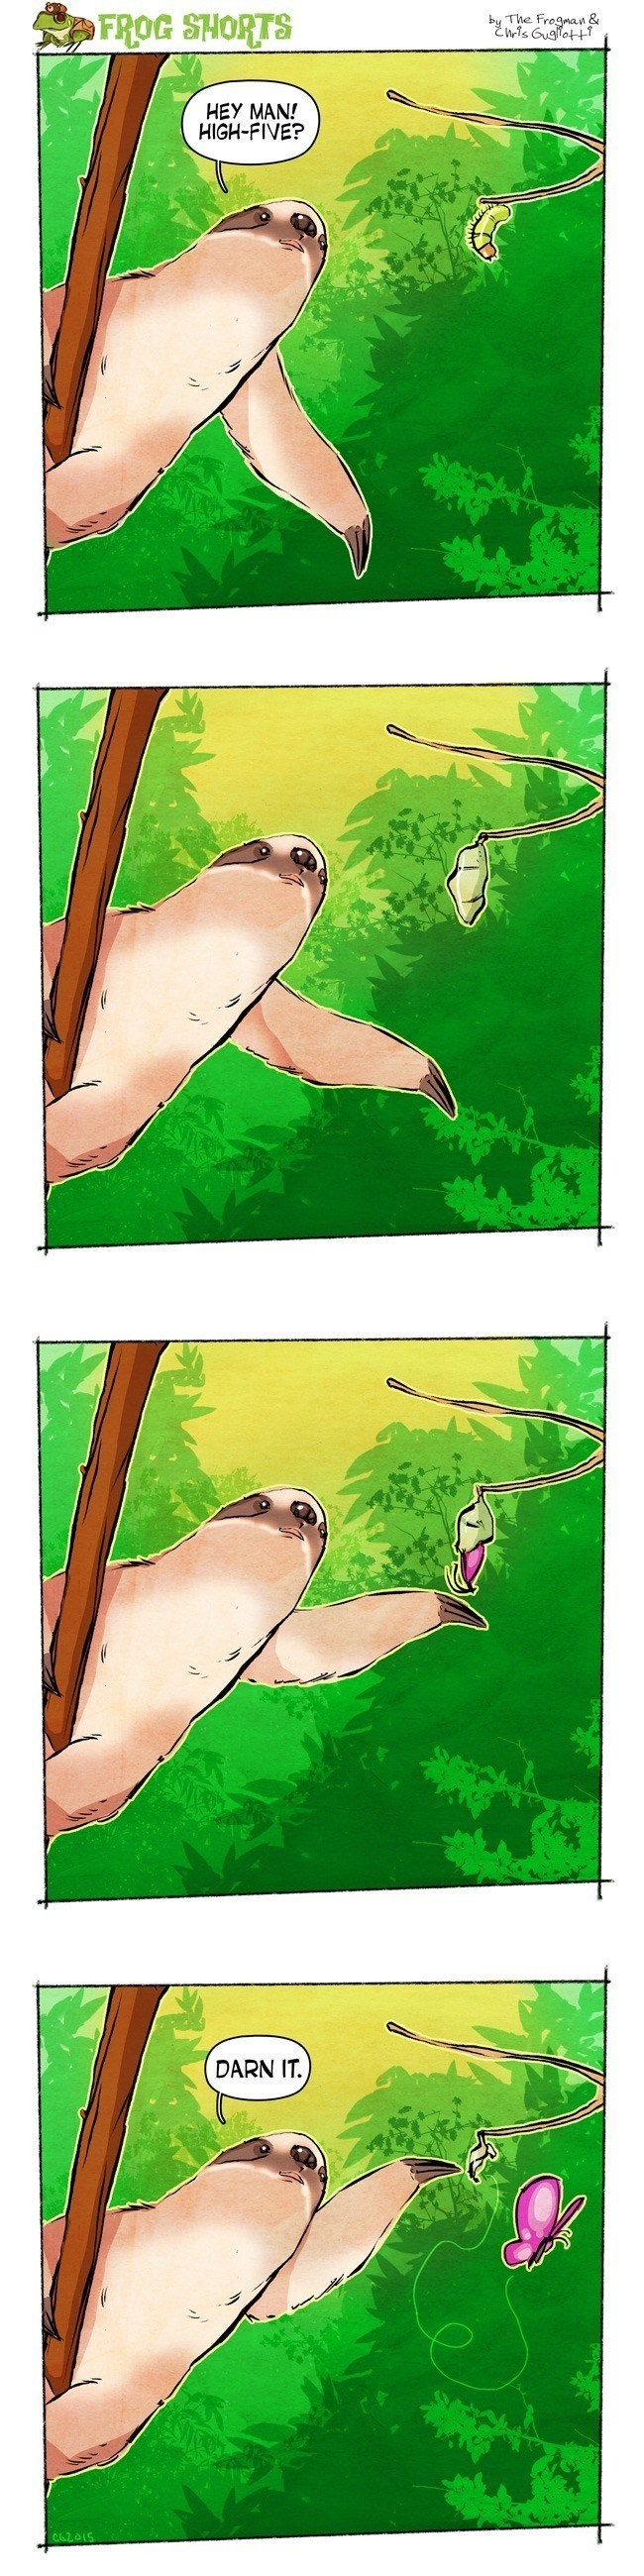 Sloth High Fives